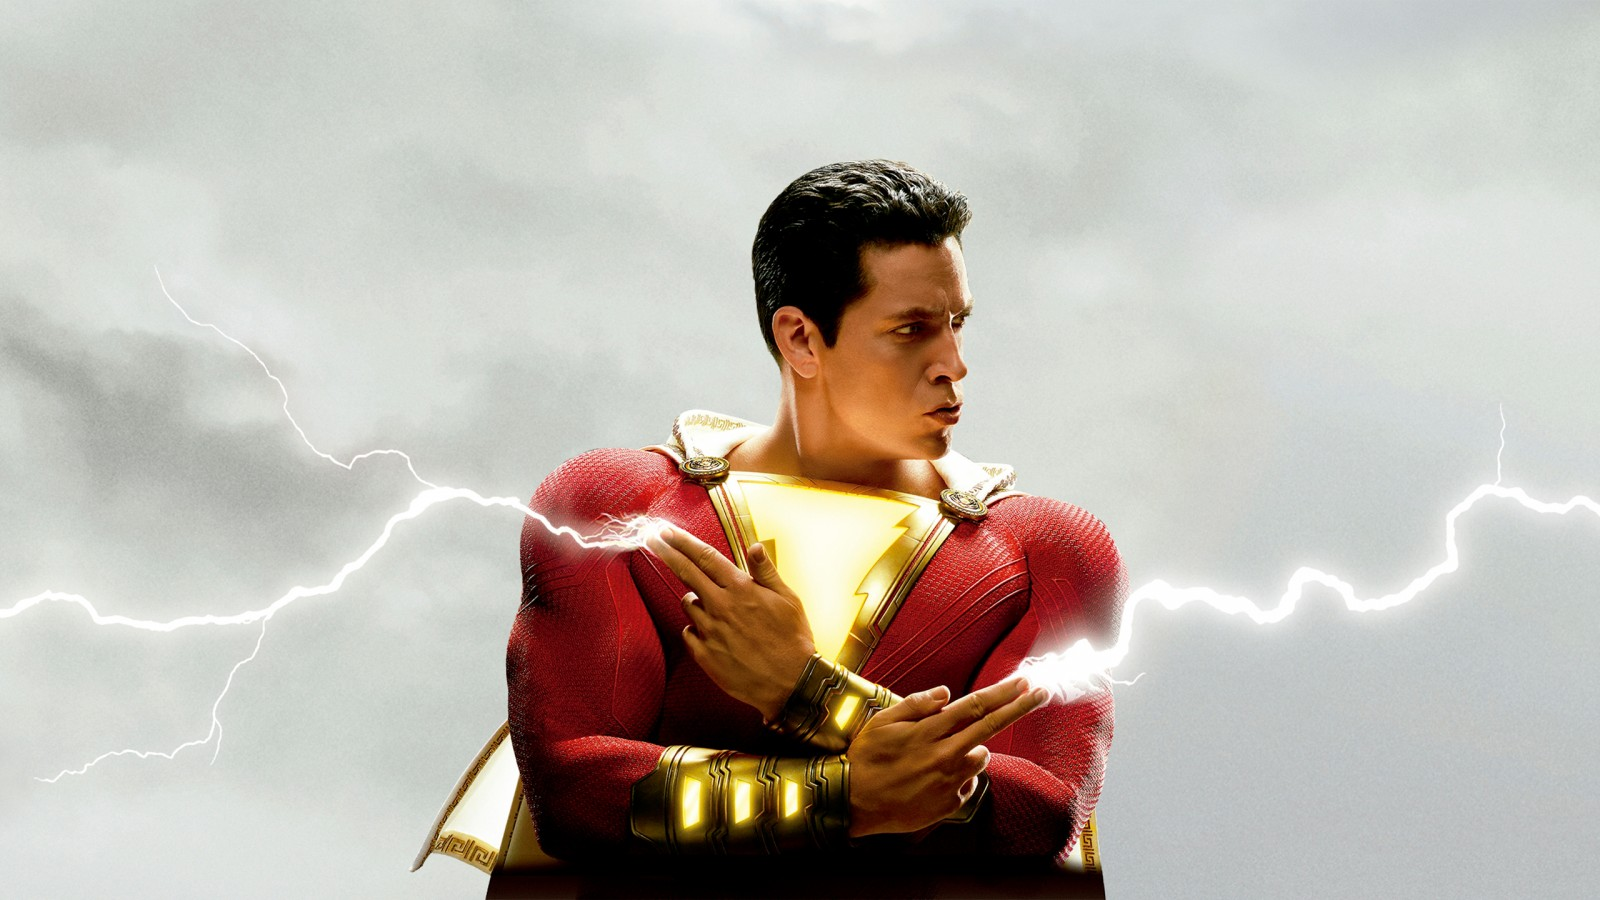 Love Wallpaper Hd 3d Zachary Levi As Shazam Wallpapers Hd Wallpapers Id 27859